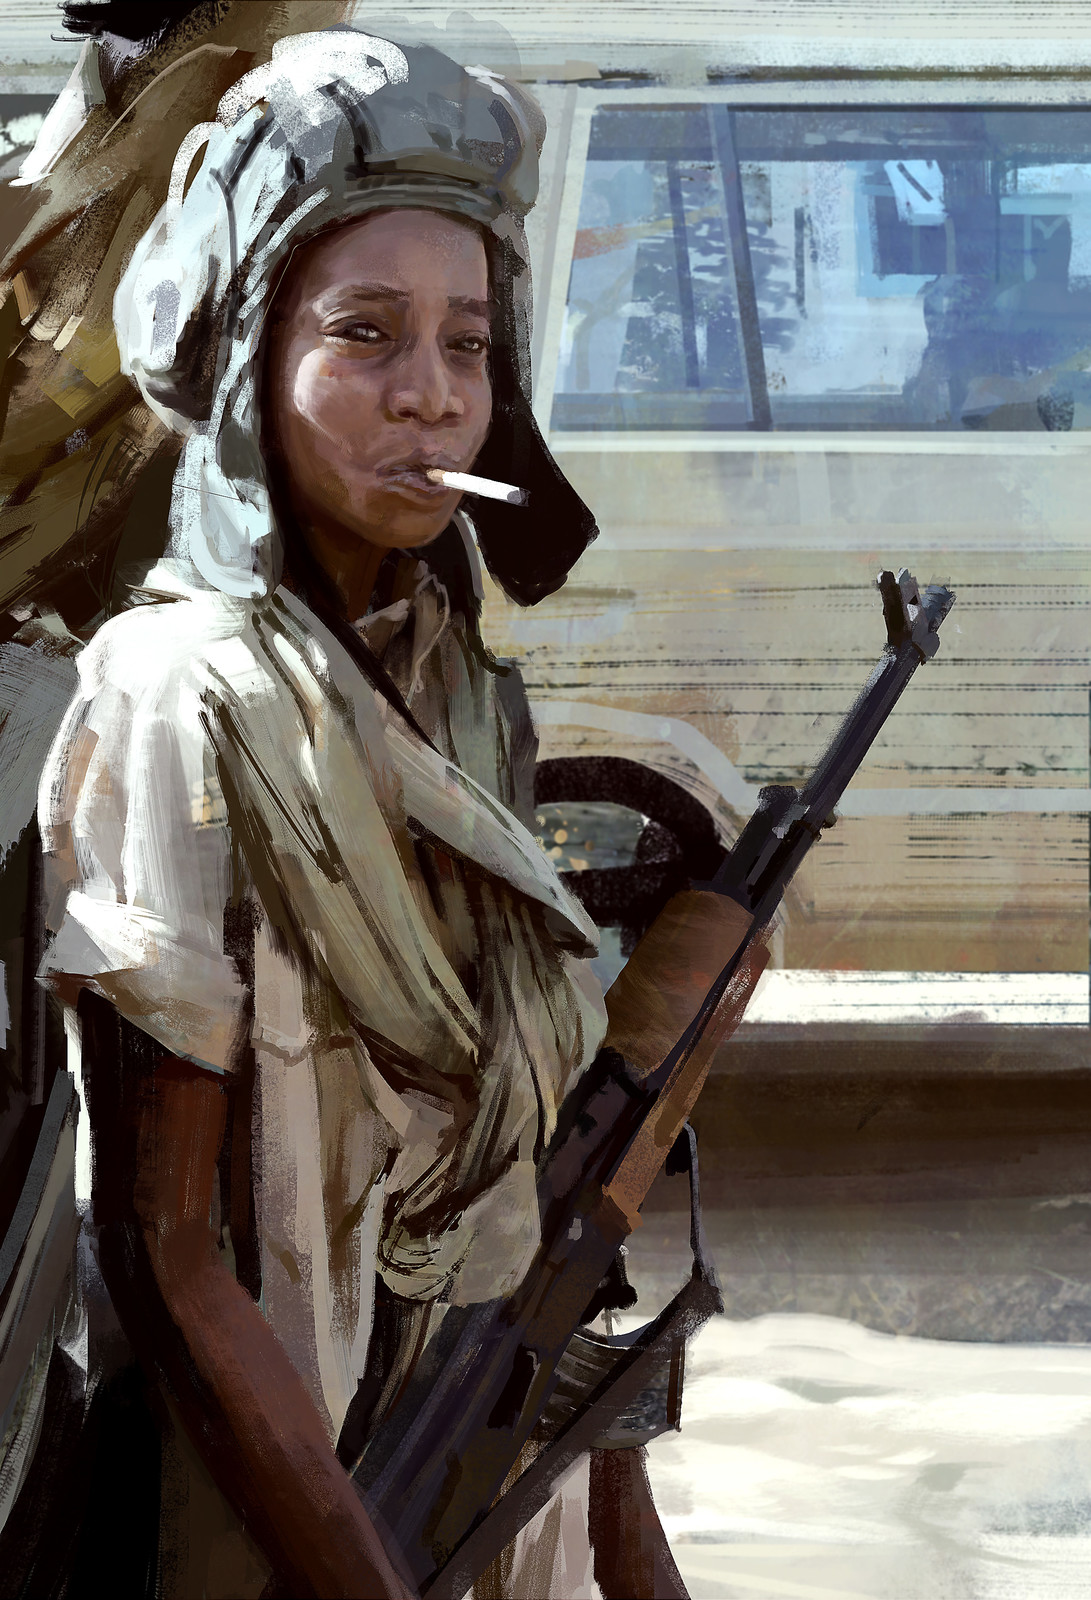 Sudan Child soldier study